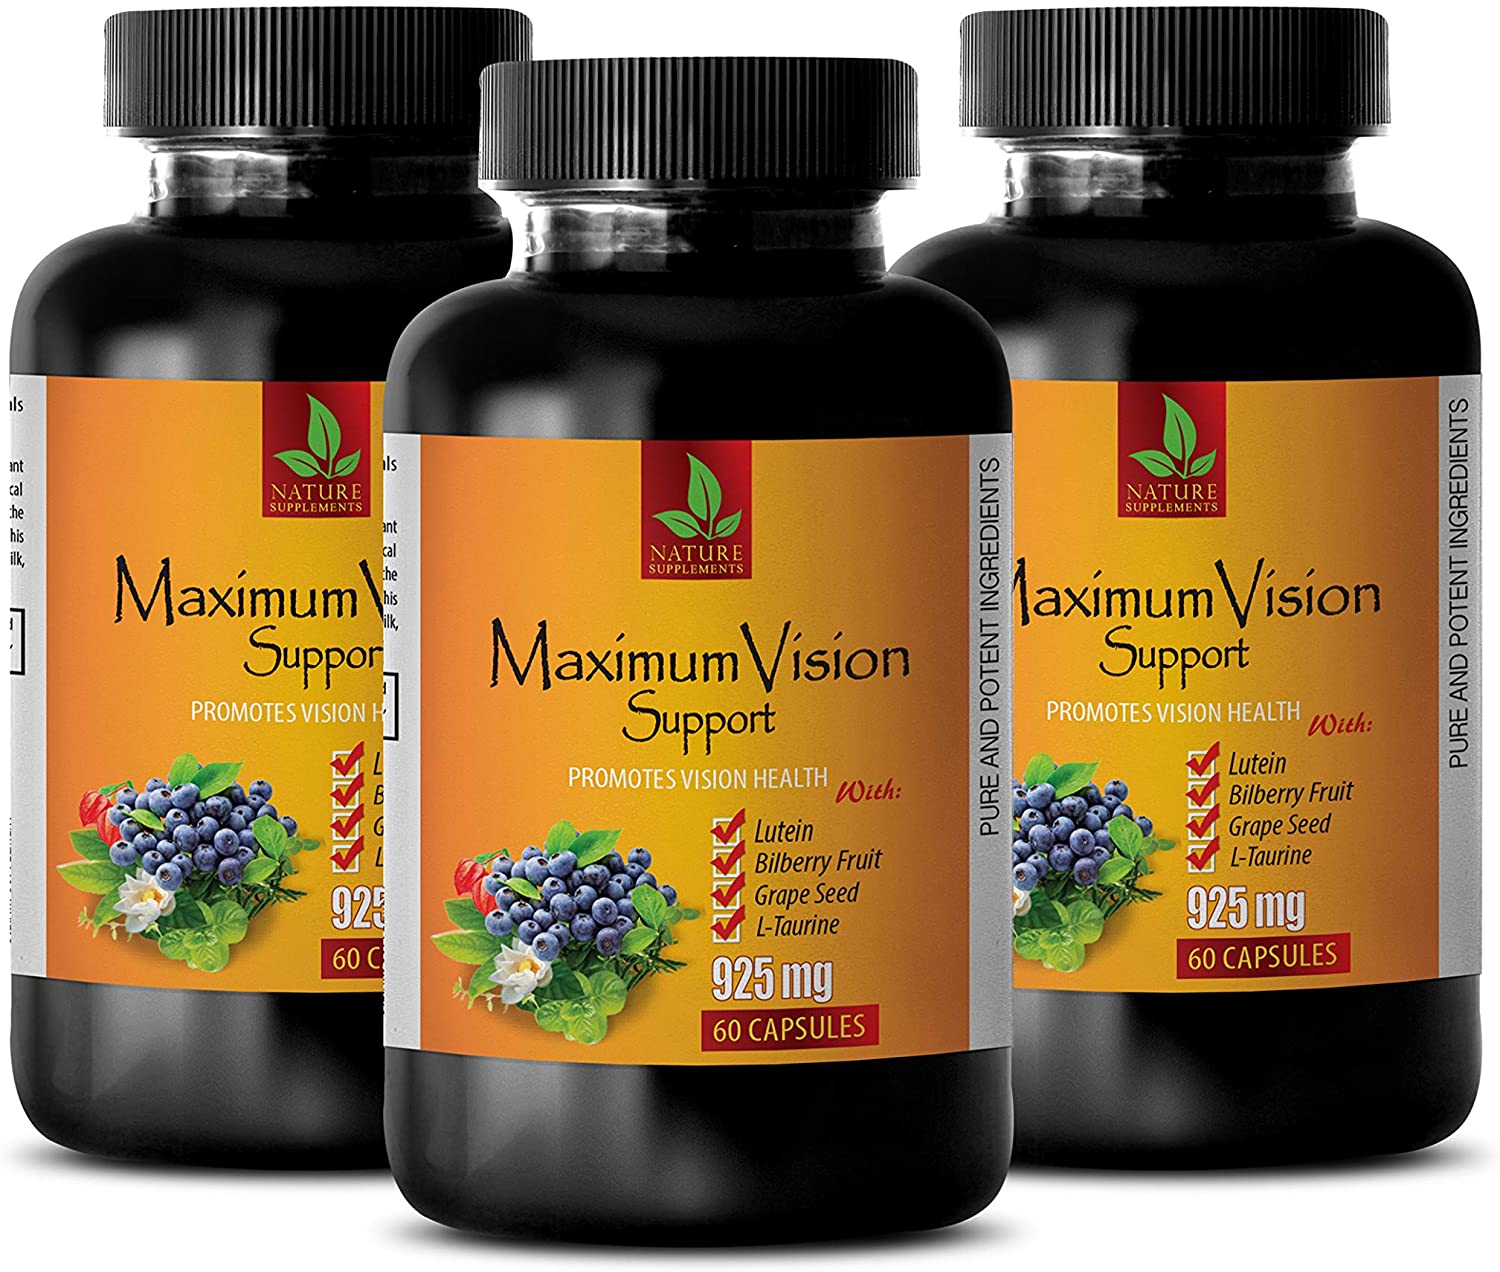 Vision Formula with Lutein - Maximum Vision Support - Promotes Vision Health - Grape Seed Extract Skin - 3 Bottle 180 Capsules